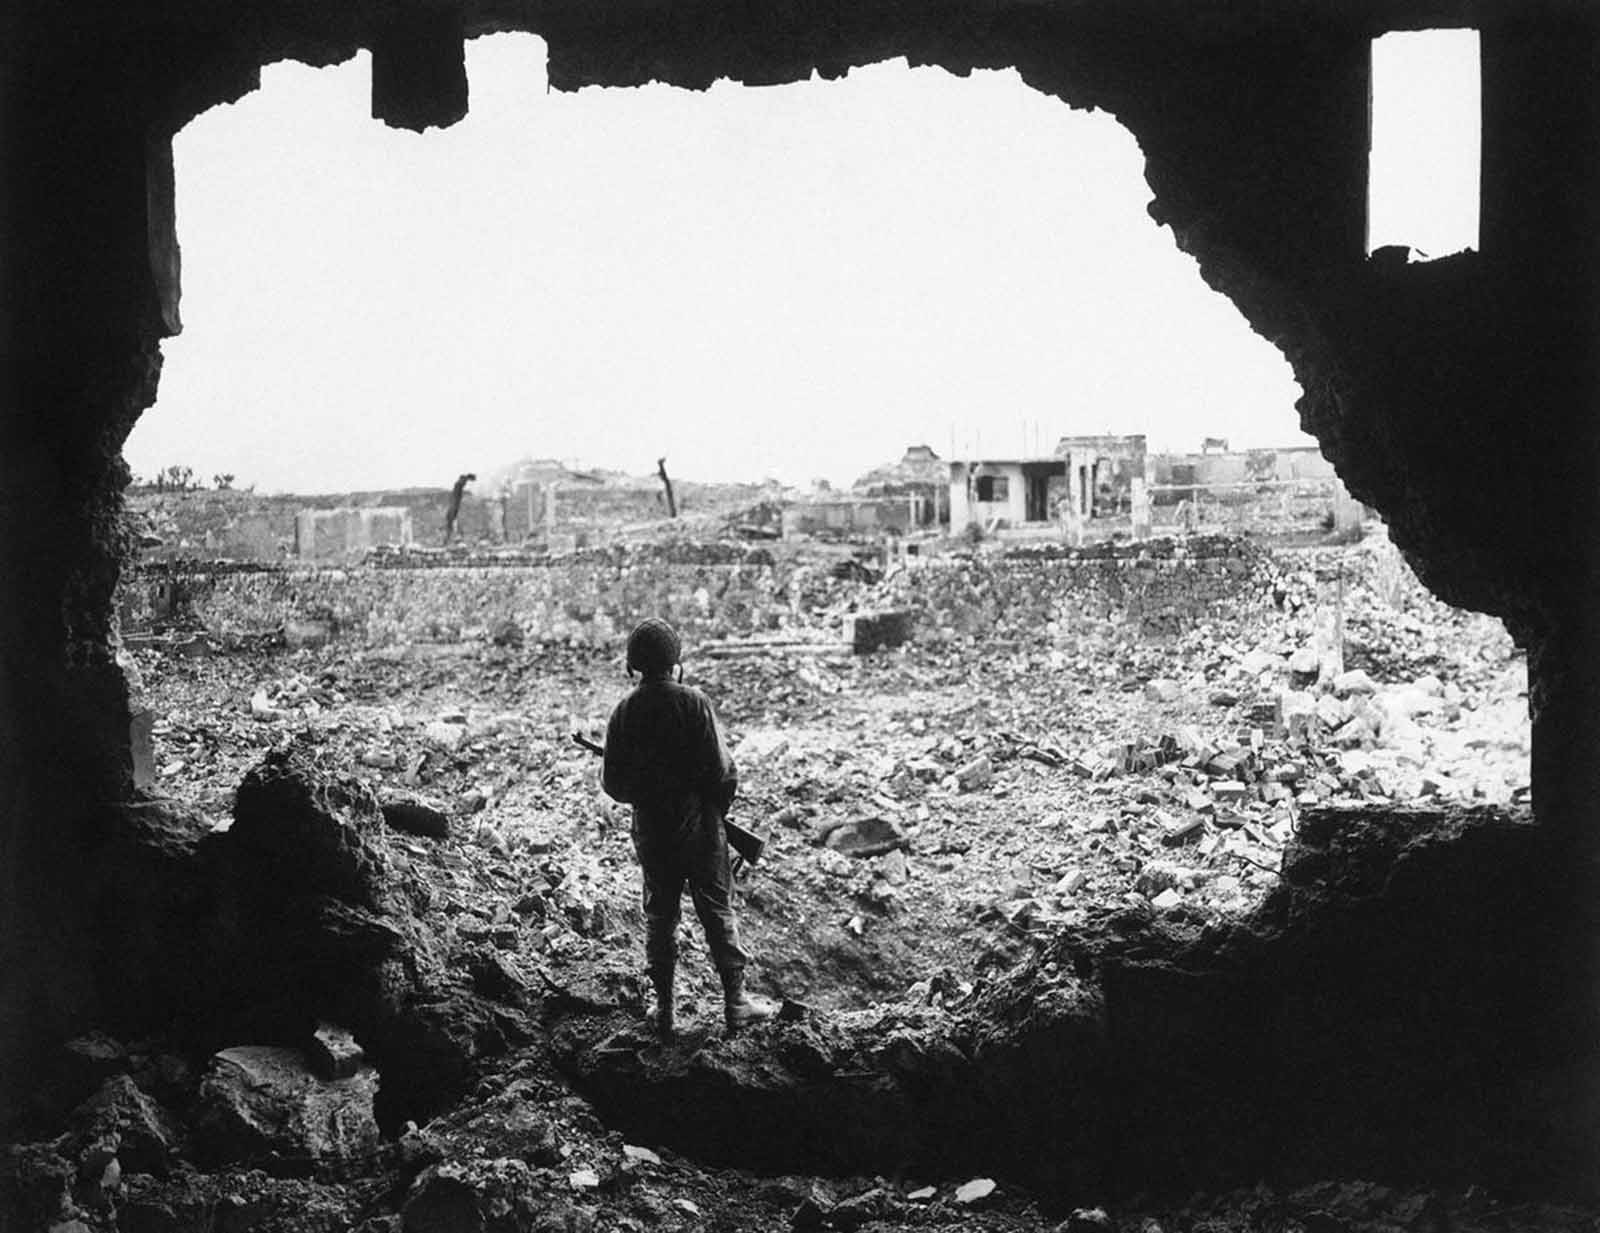 Perched on the rim of a gaping hole in the wall of a theater in the Ryukyu capital, a Marine rifleman views the result of the American bombardment of Naha, Okinawa, Japan, on June 13, 1945. Structure skeletons are all that remain of the city with a pre-invasion population of 443,000 people.